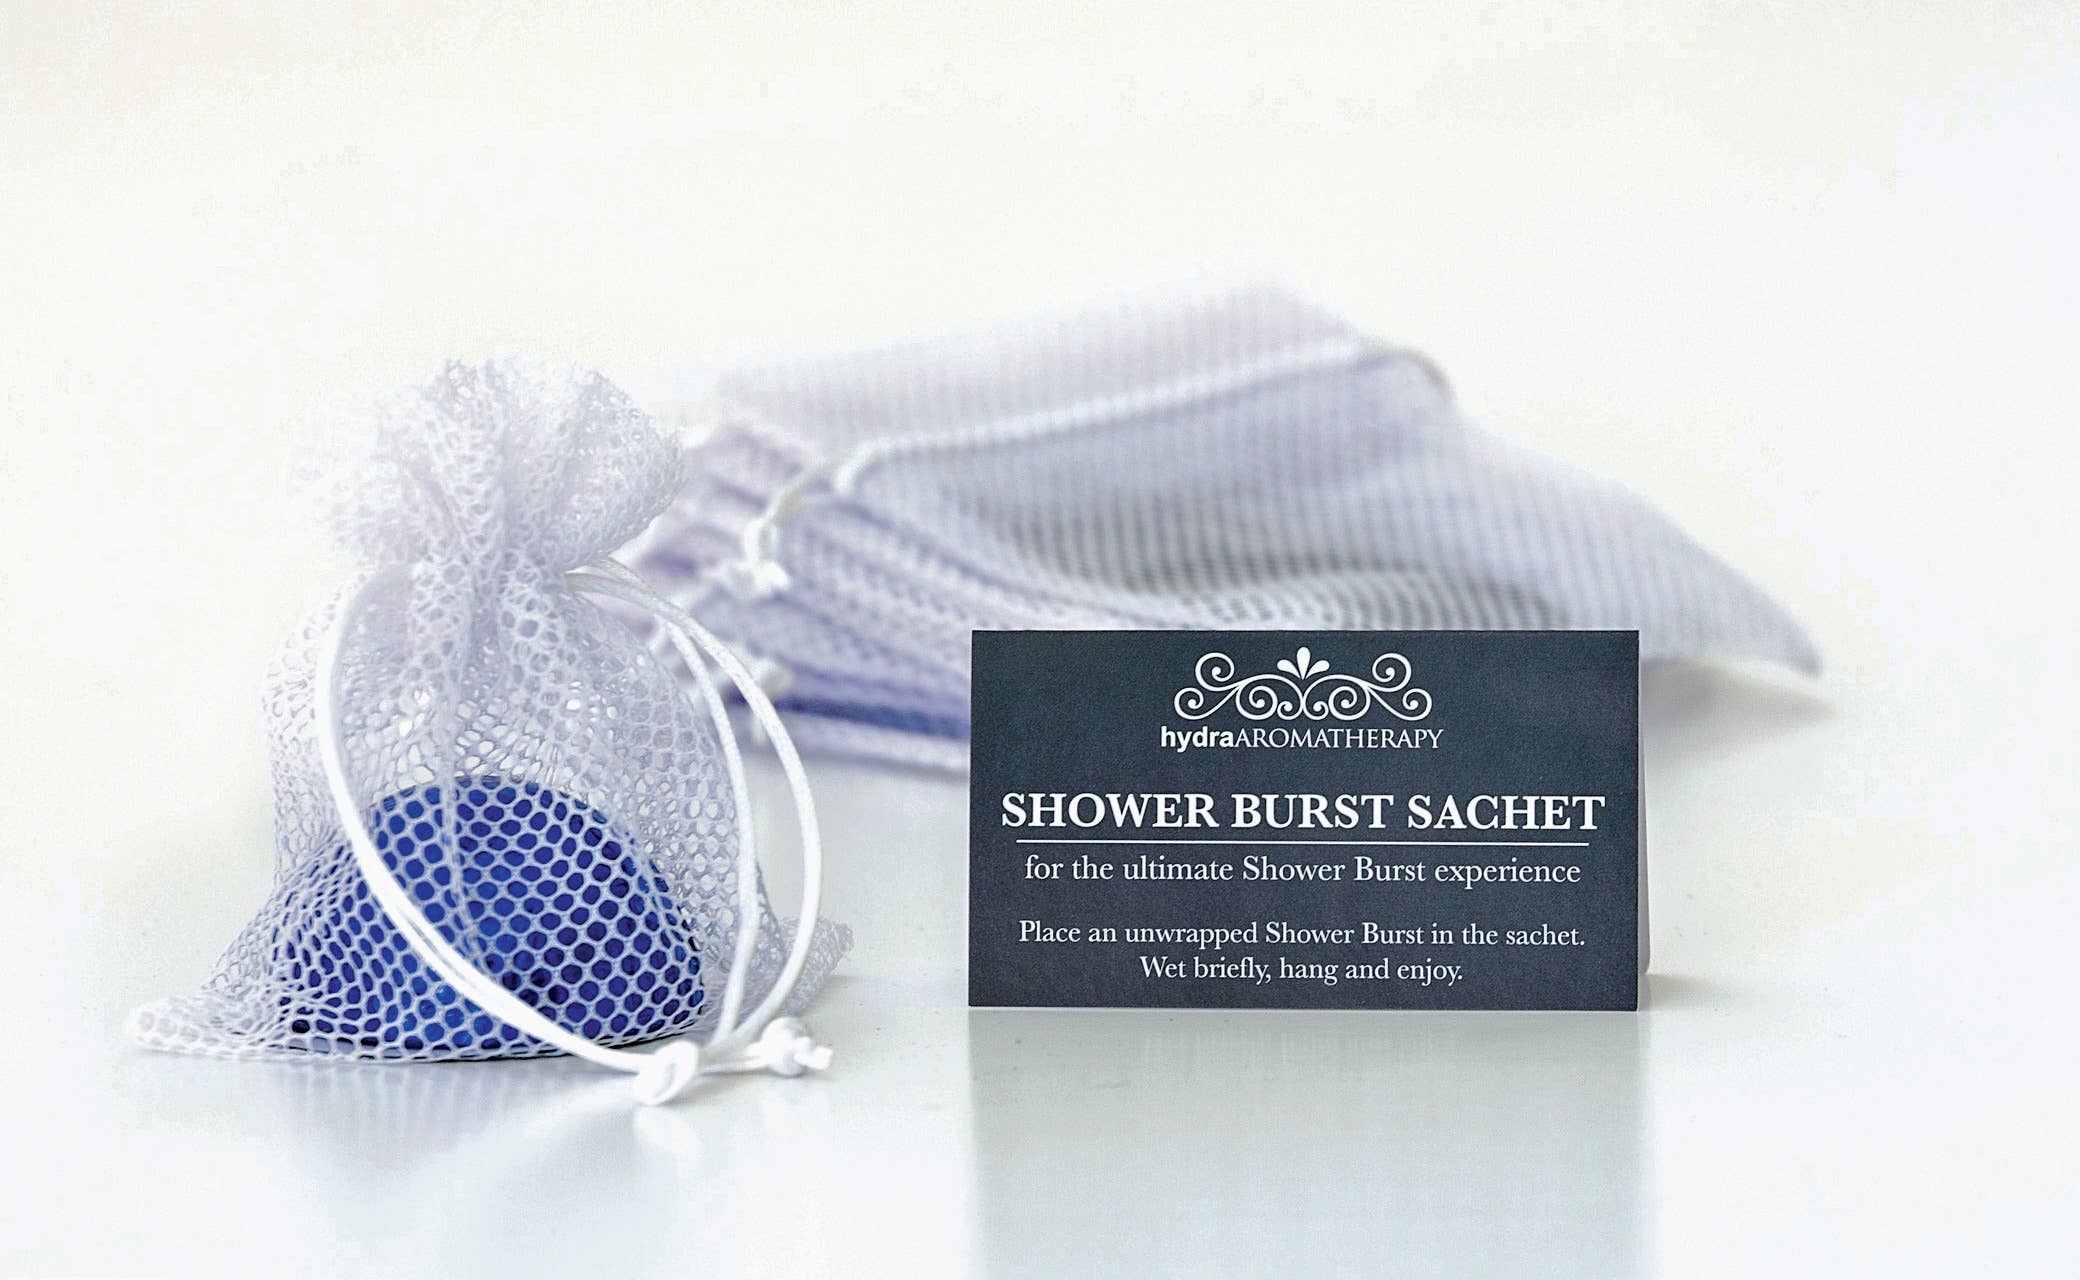 hydra Aromatherapy - White Sachet Shower Burst